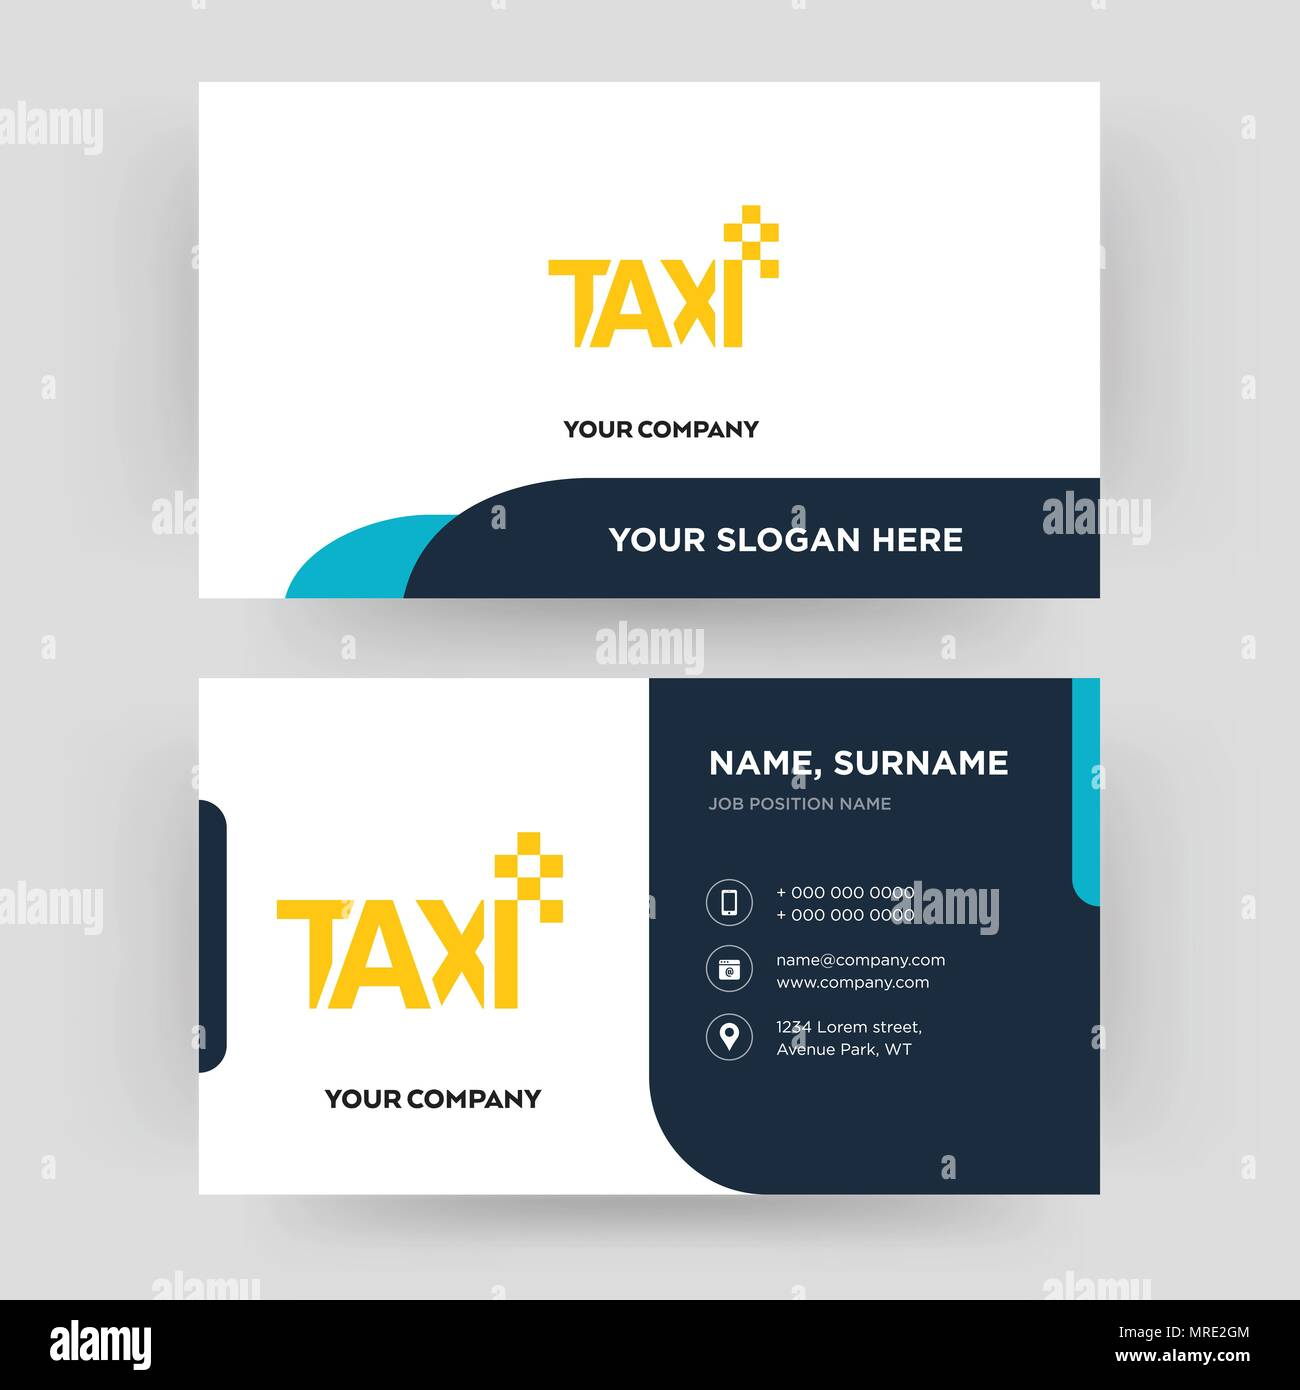 Taxi Business Card Design Template Visiting For Your Company